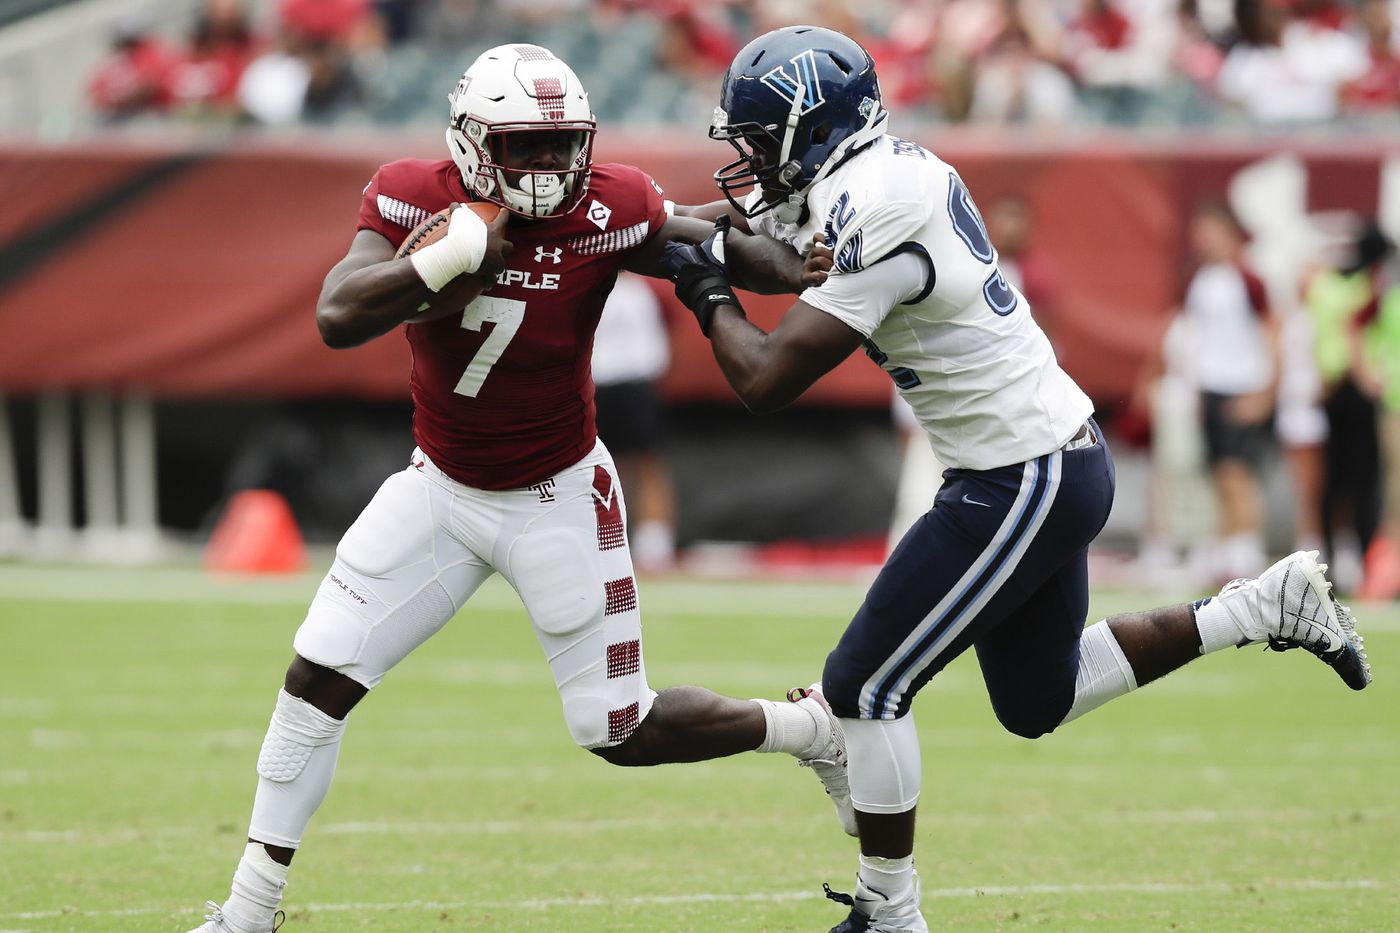 Temple's running game needs to step up against Buffalo